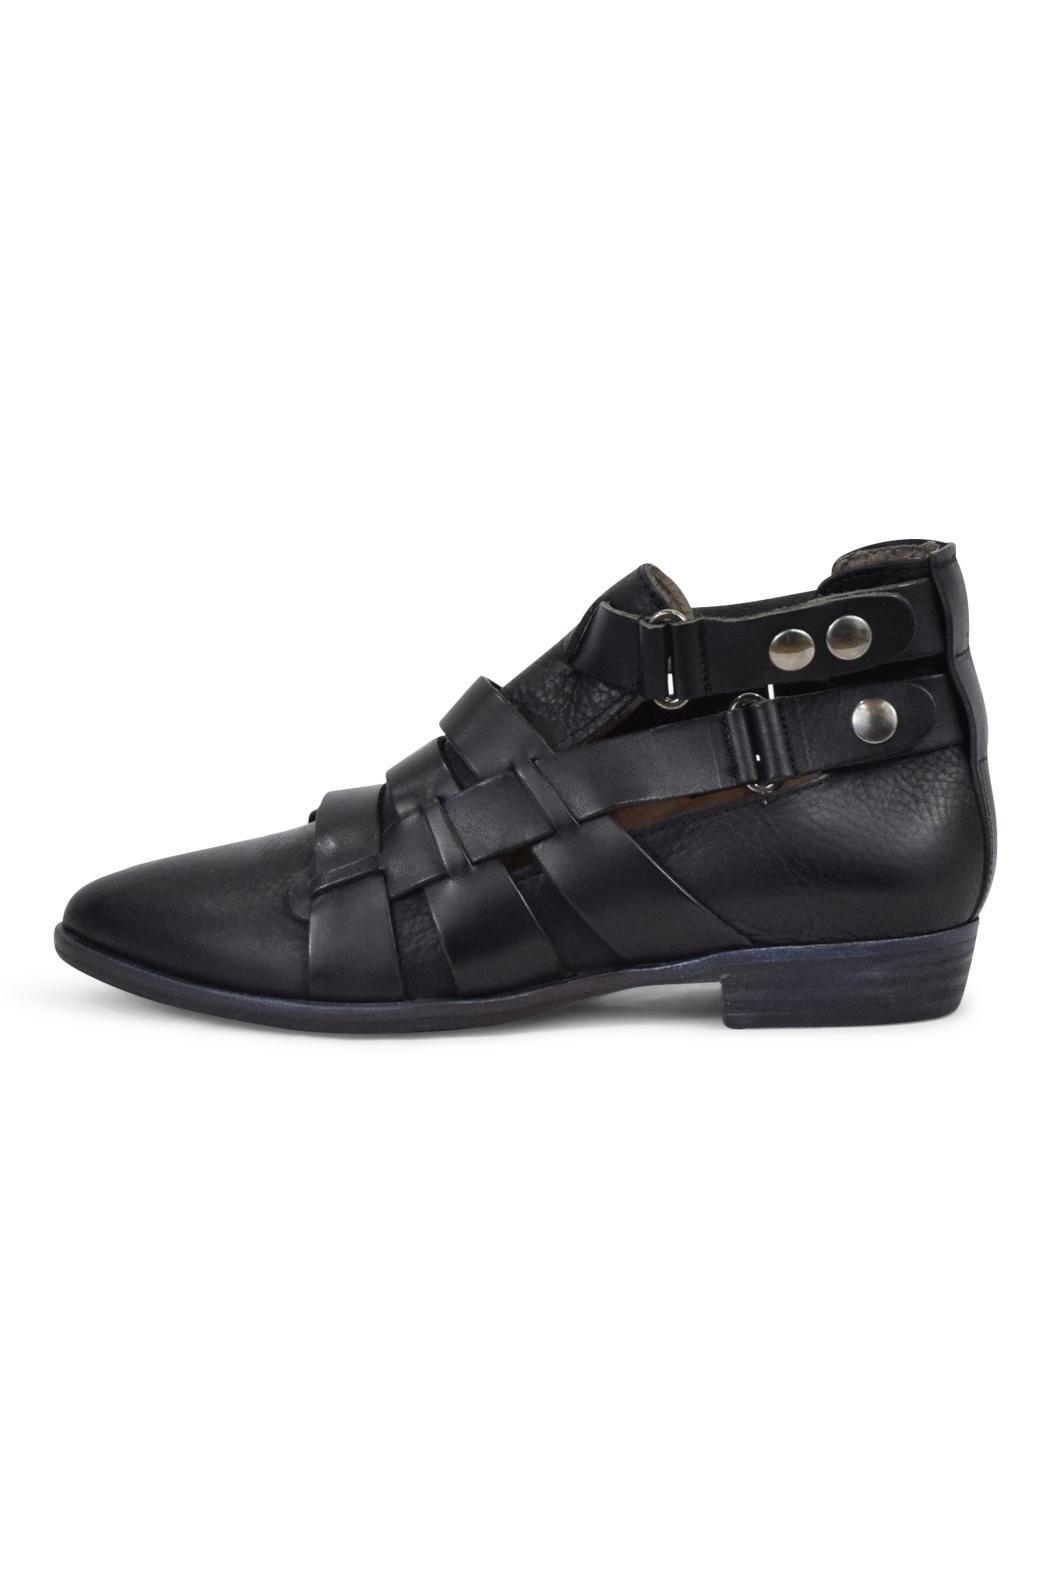 Free People Black Leather Bootie - Main Image